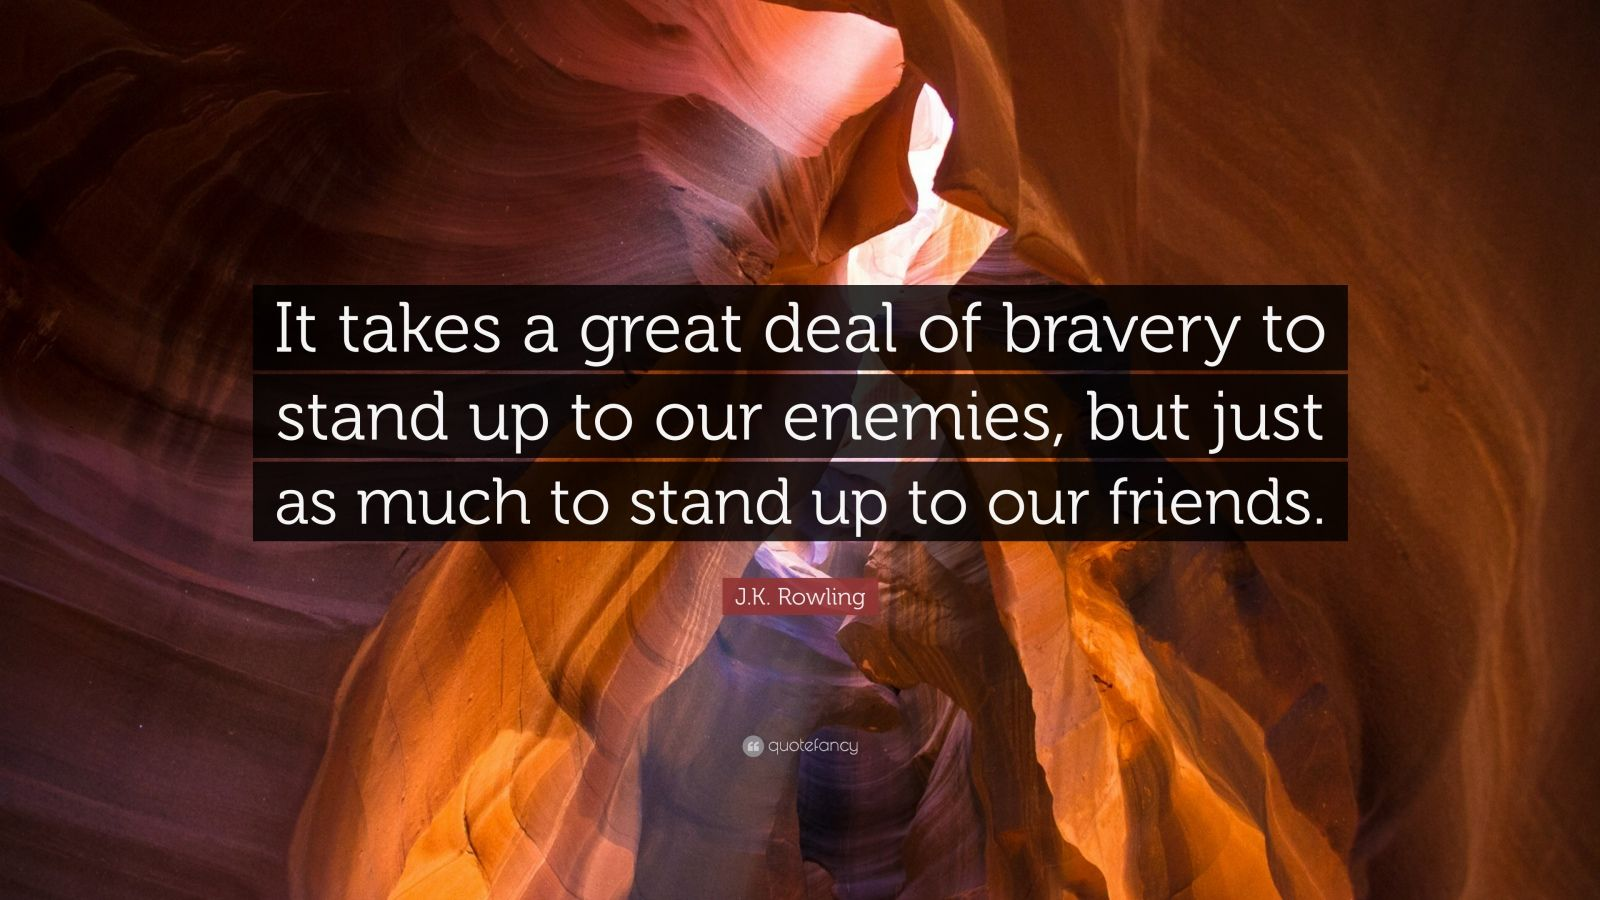 it takes a great deal of courage to stand up to your friends It takes a great deal of courage to stand up to your enemies, by jk rowling from my large collection of positive, romantic, and funny quotes.